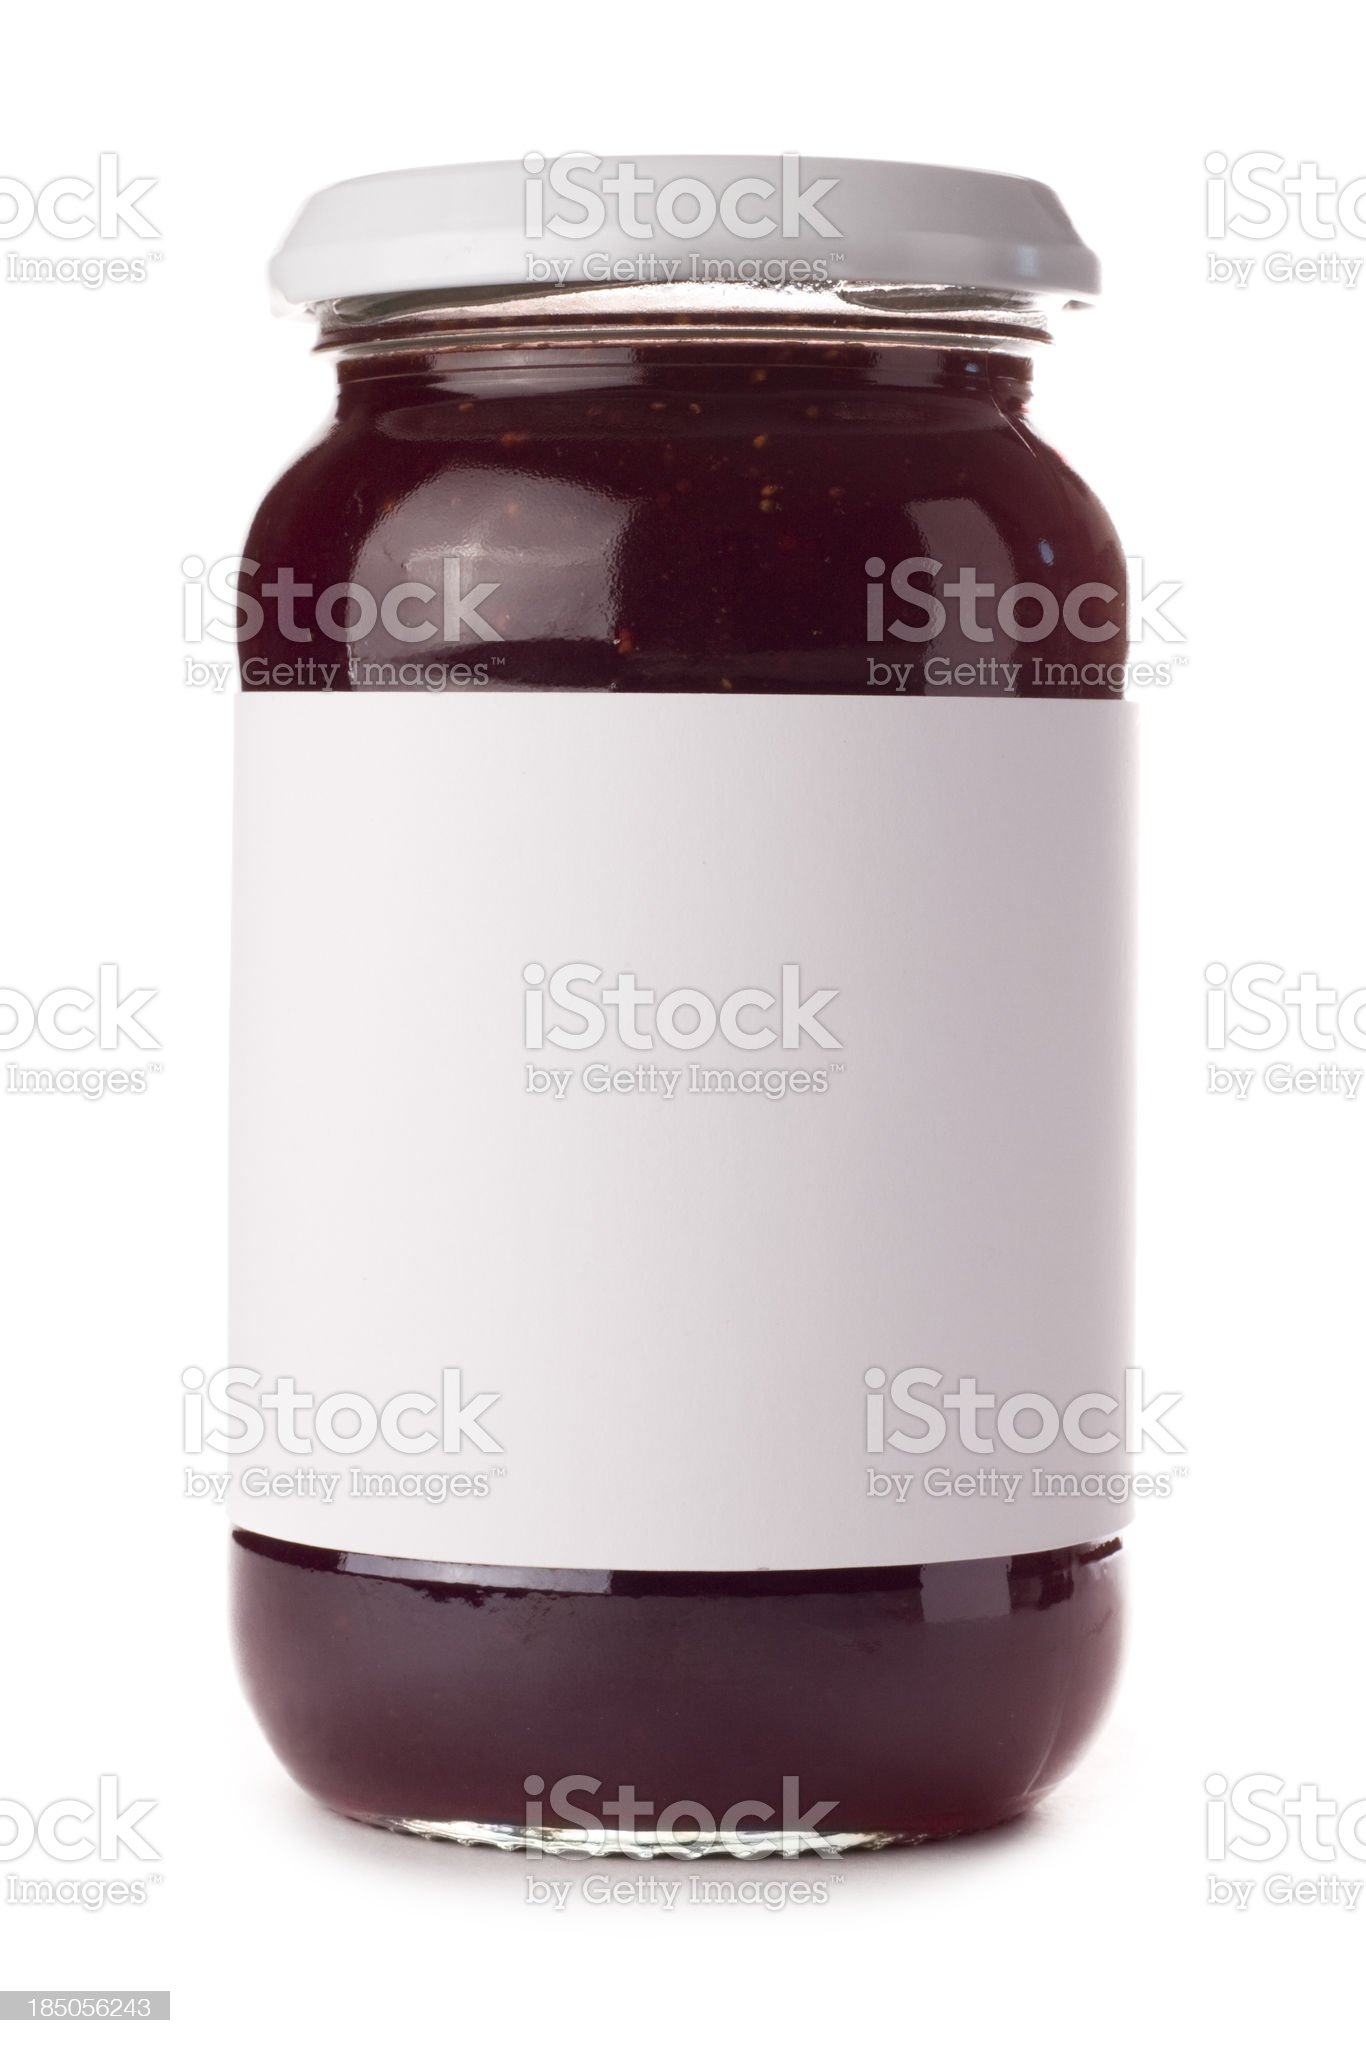 Glass preserve jar with blank label on a white background royalty-free stock photo